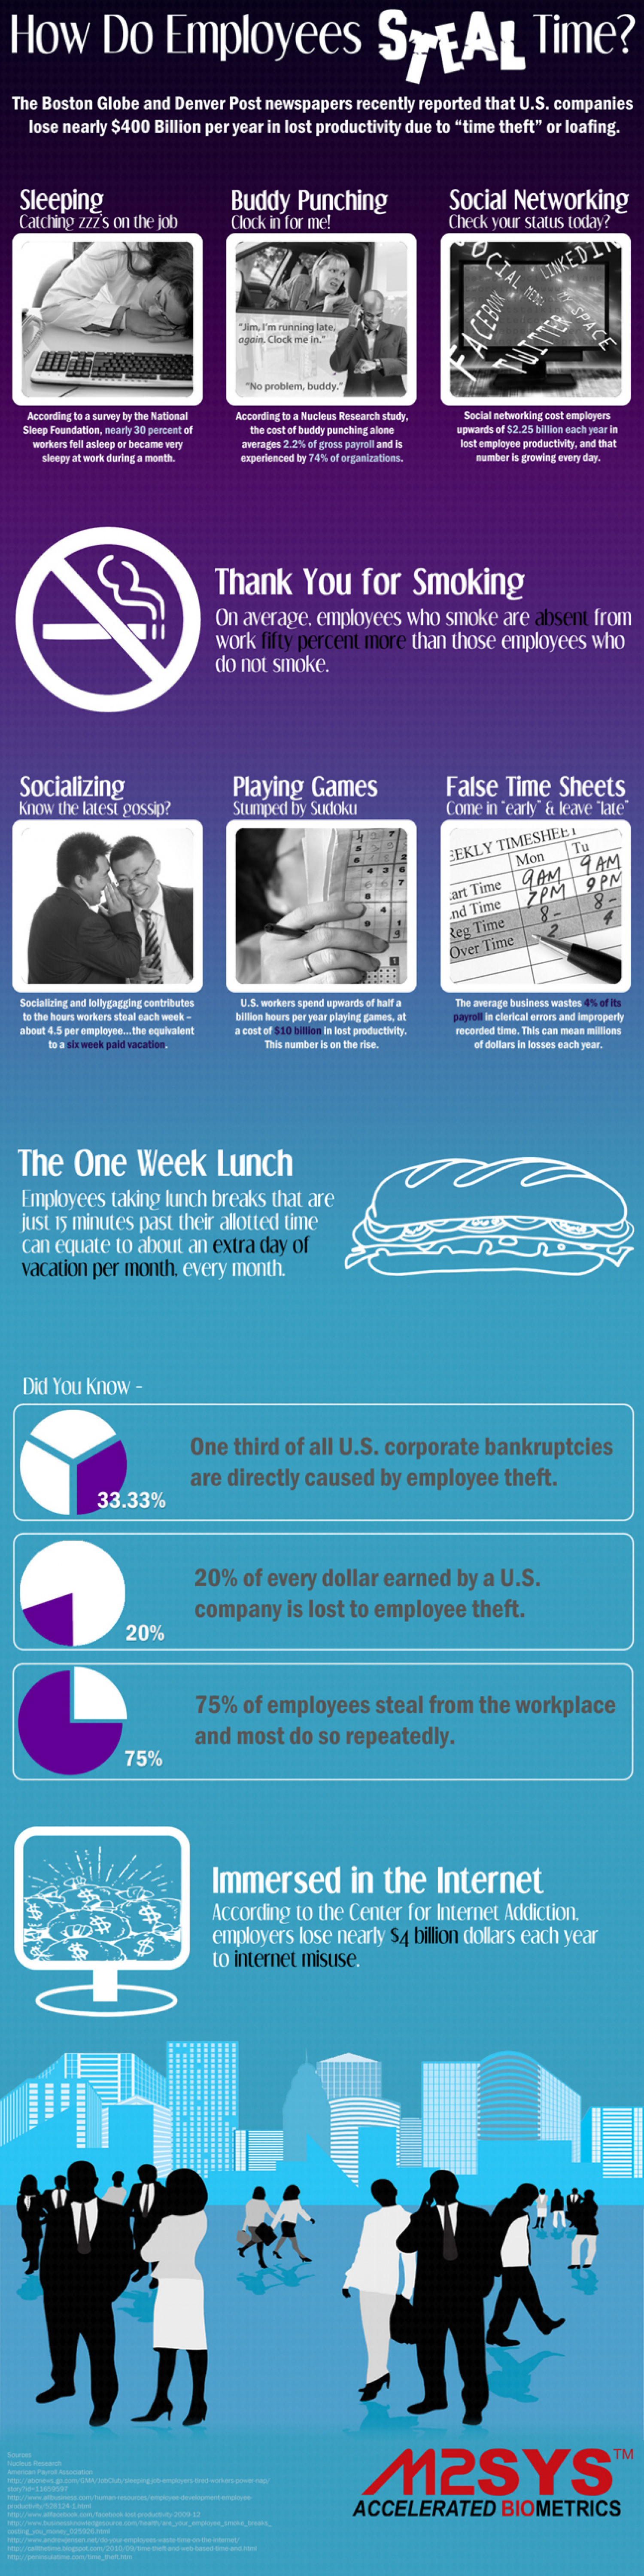 How Do Employees Steal Time Infographic